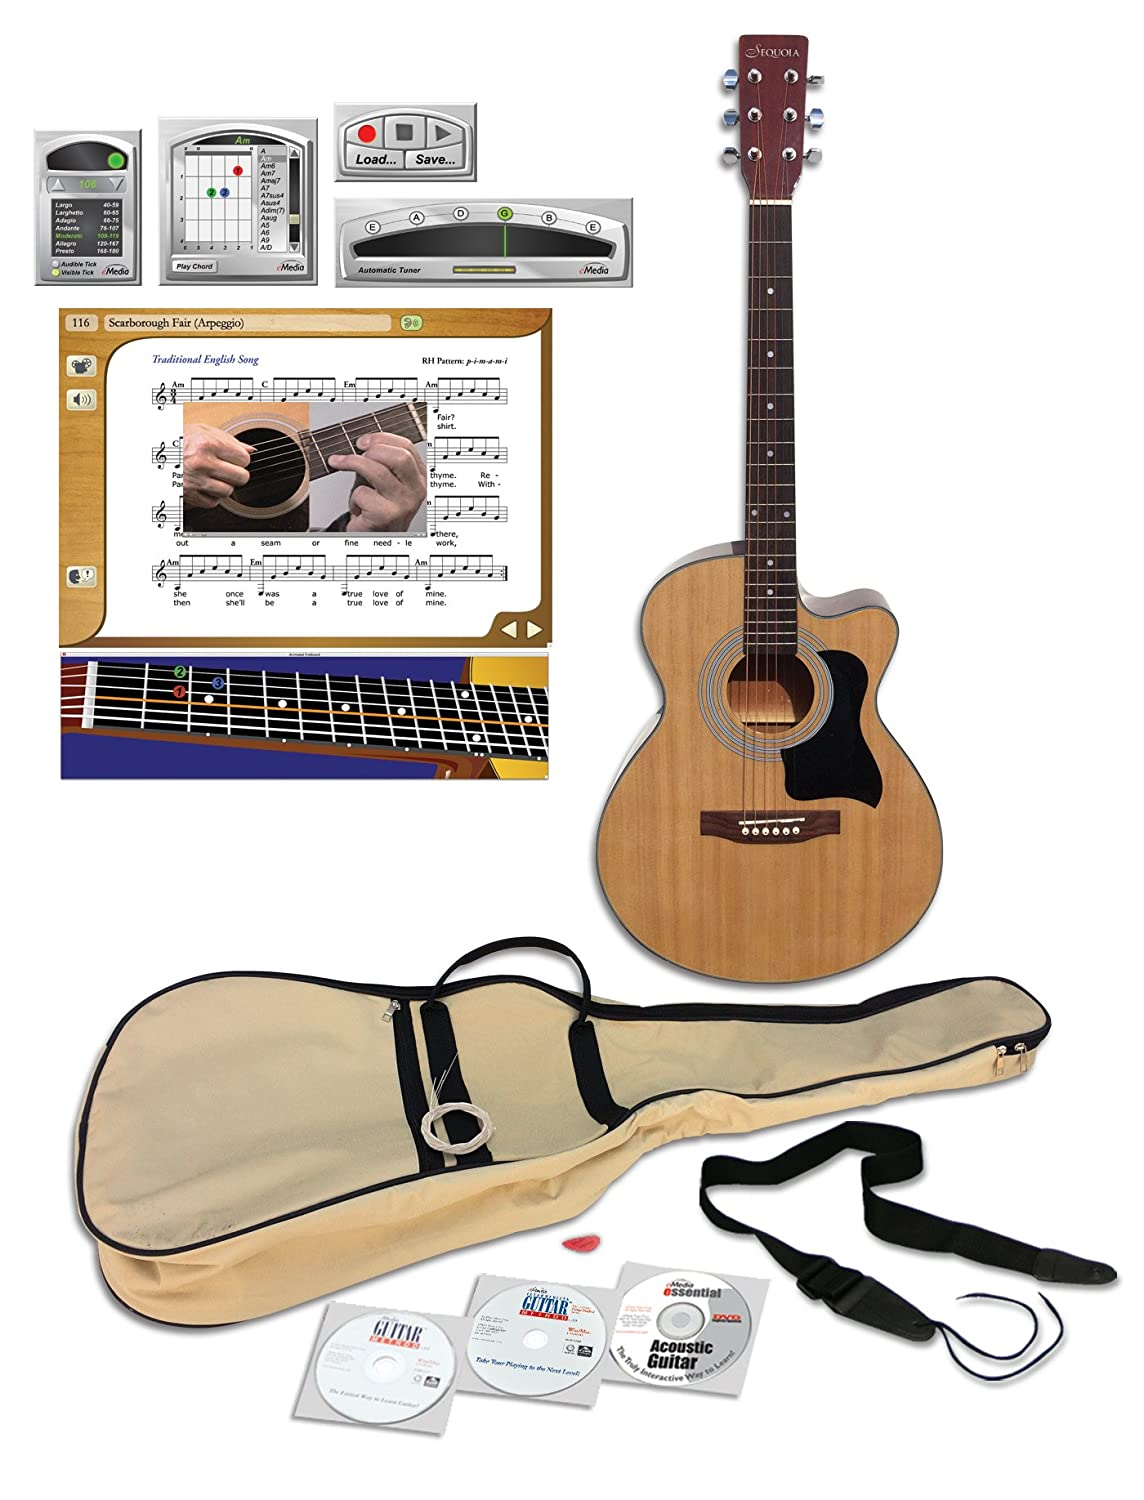 eMedia Teach Yourself Acoustic Guitar Pack Deluxe, 40' 40 EG08152B